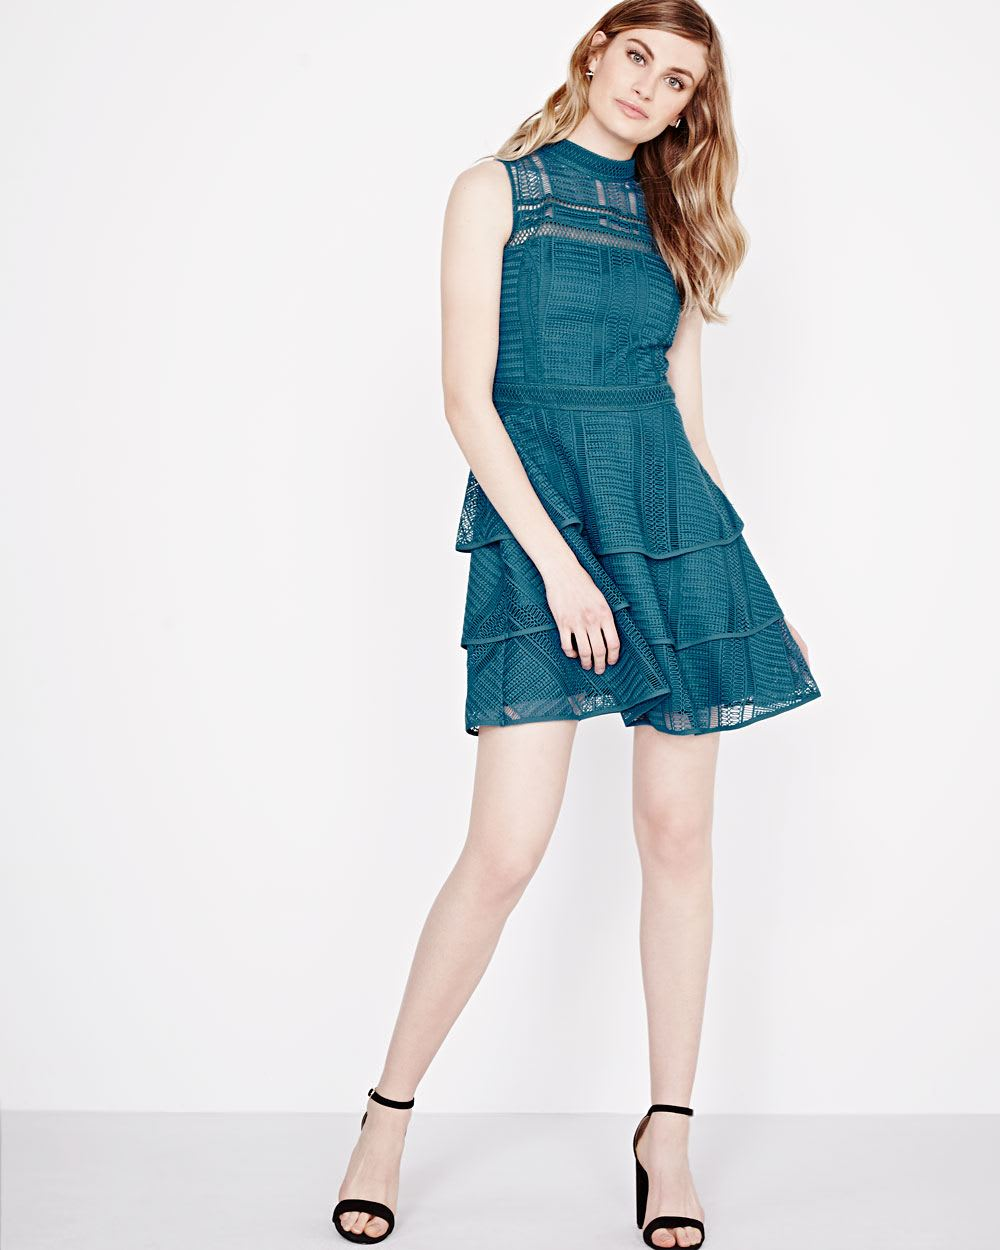 Tiered Fit and Flare Dress by Adelyn rae | RW&CO.